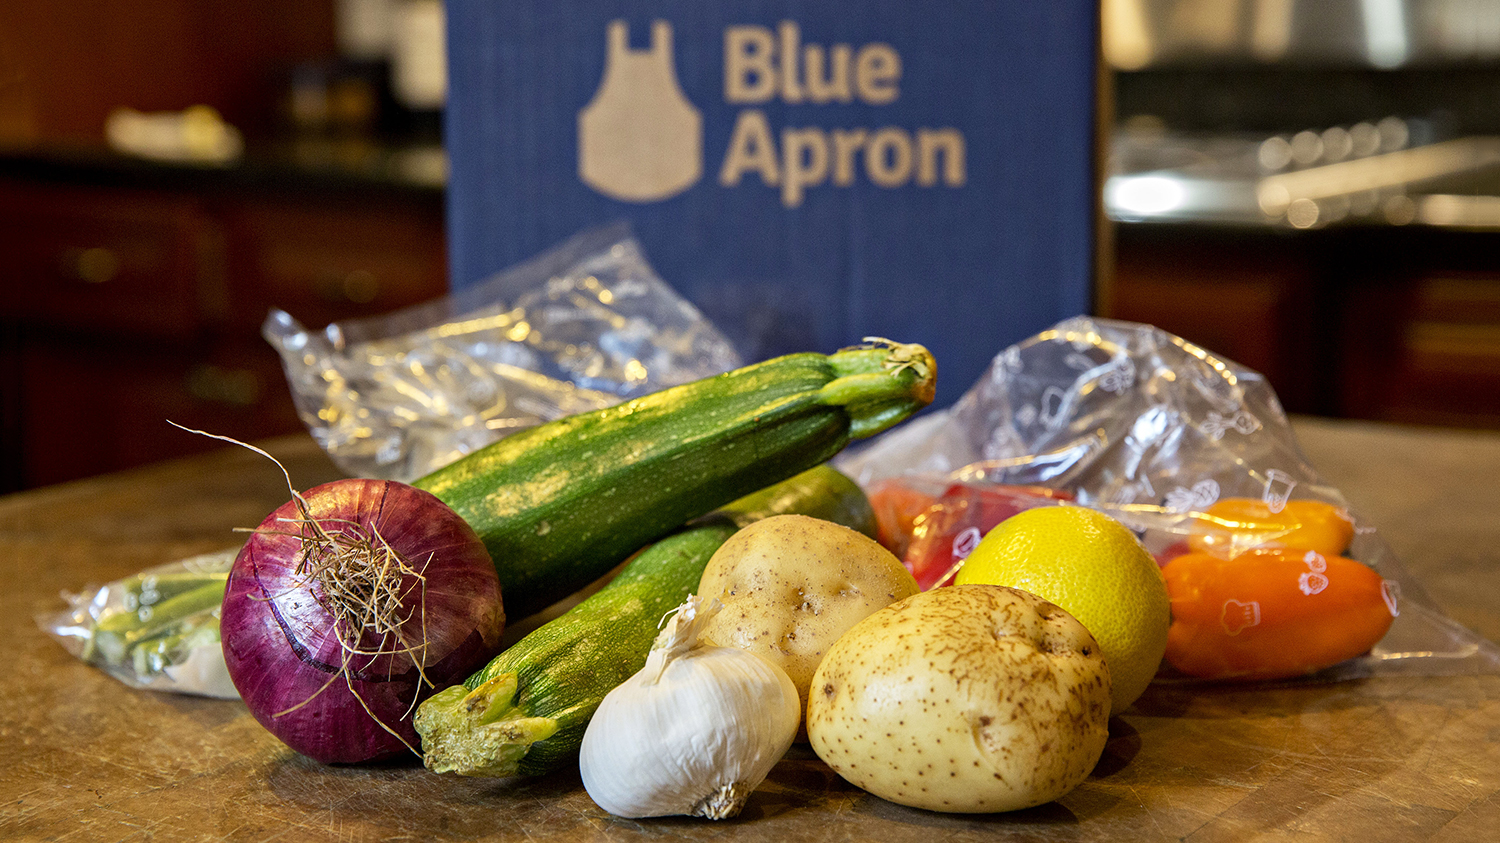 Does Blue Apron's Stock Value Mean Wall Street Isn't Into Meal Kit Delivery?